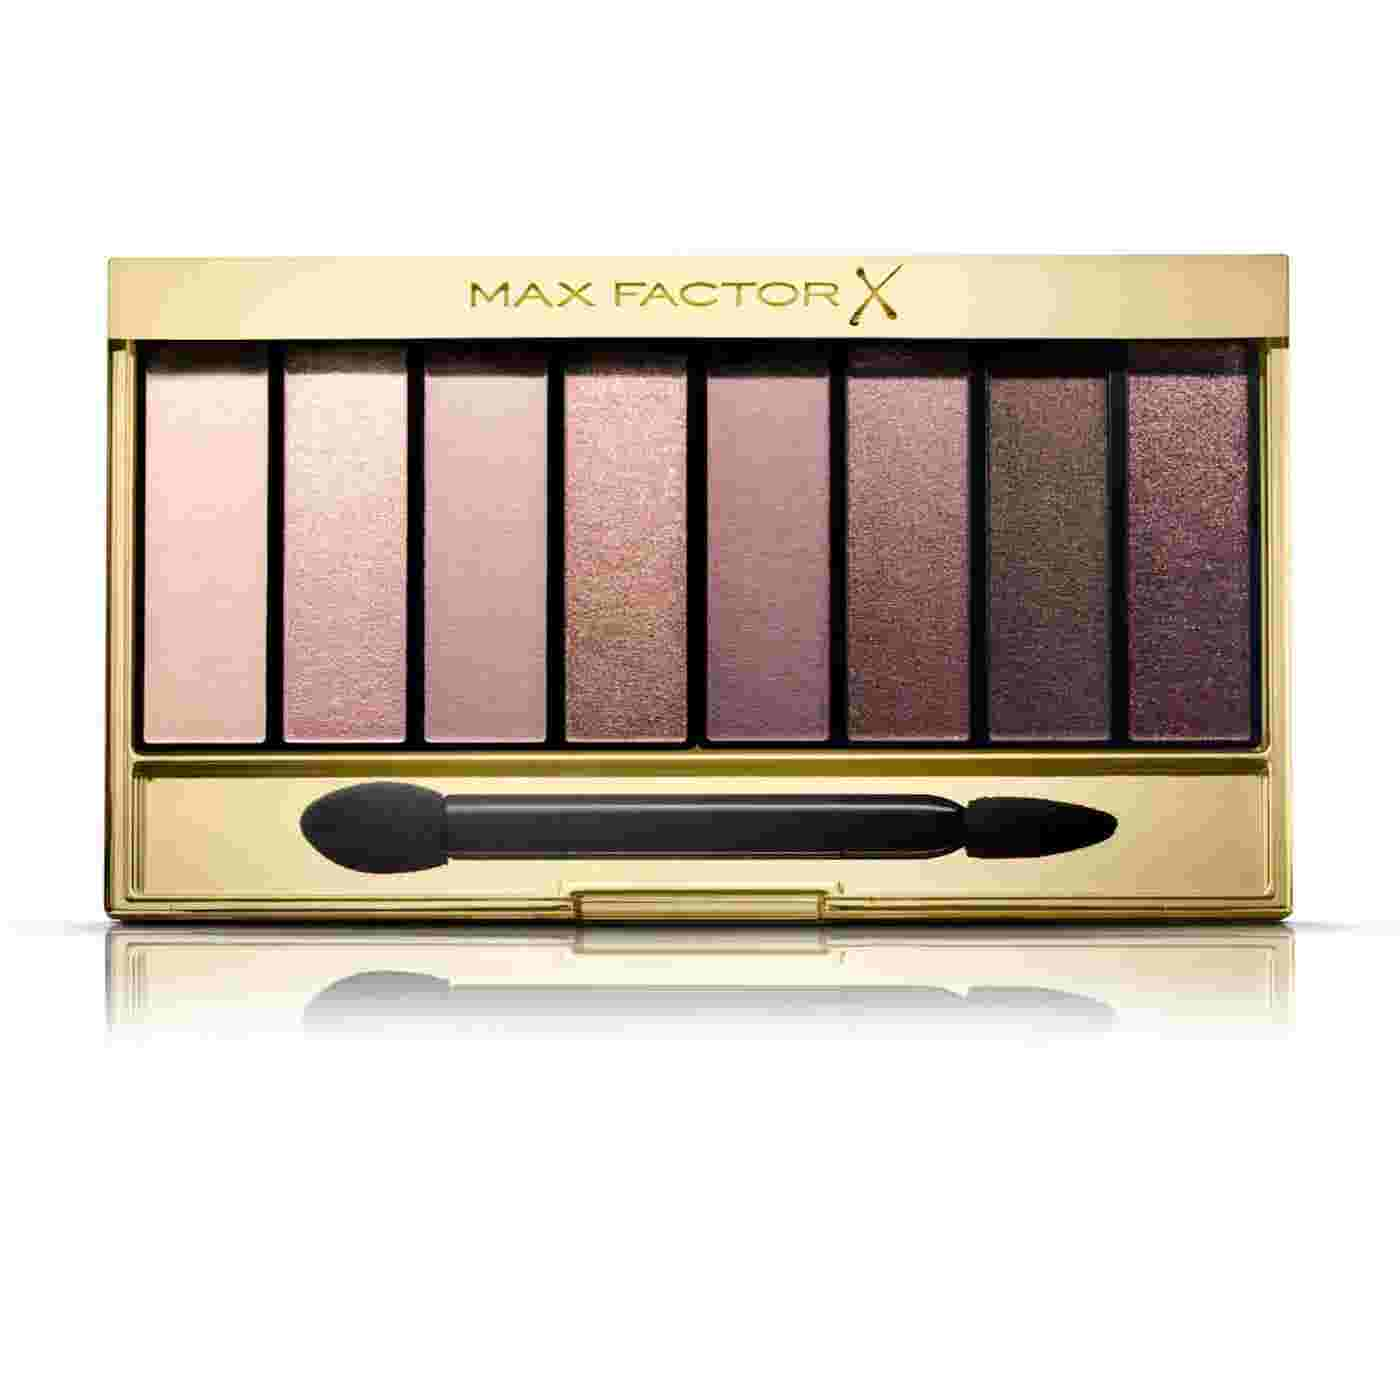 Max Factor Masterpiece Nude Eyeshadow Palette in Rose Nudes